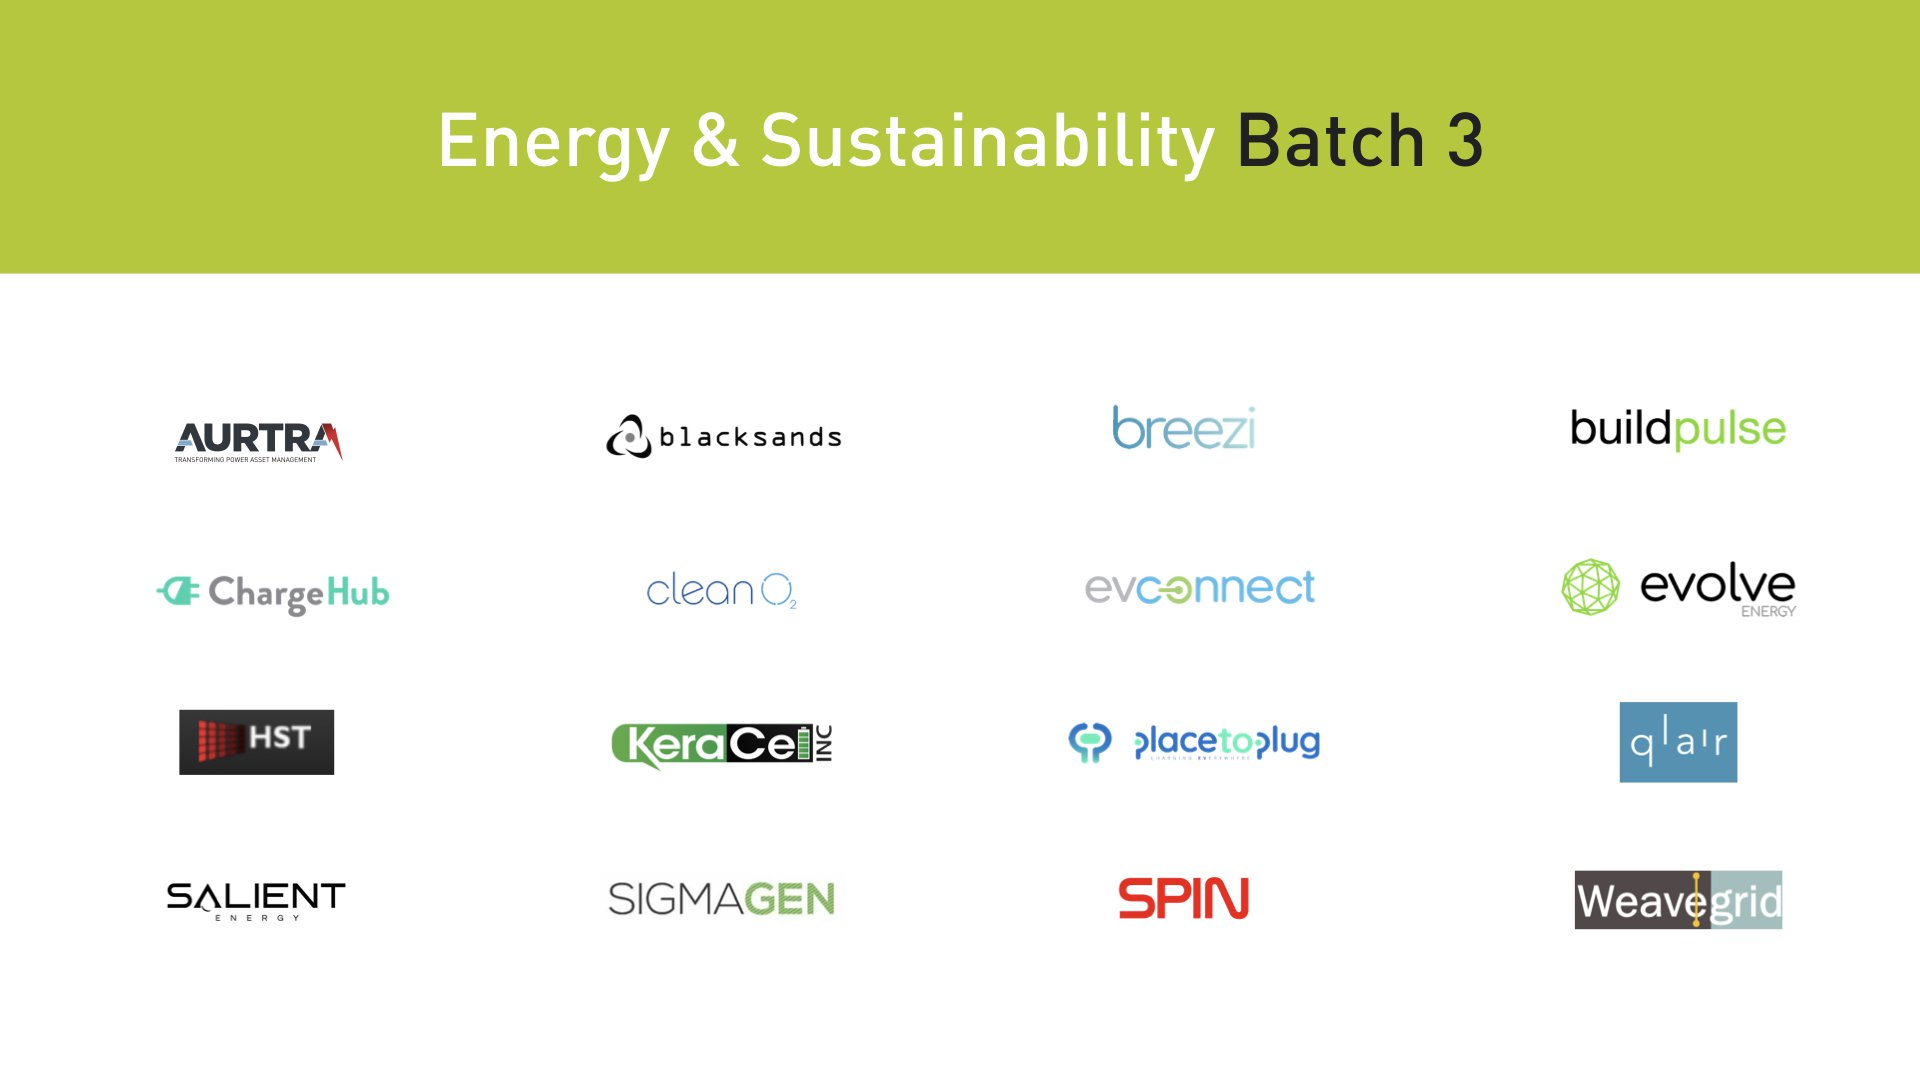 plug and play energy & sustainability startups